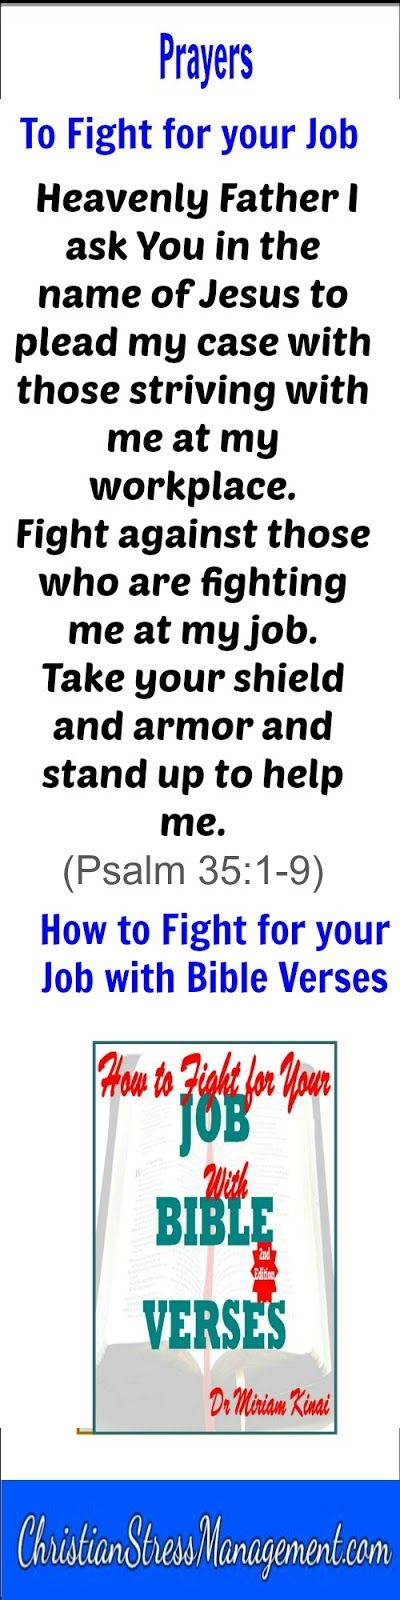 Bible prayers to fight for your job